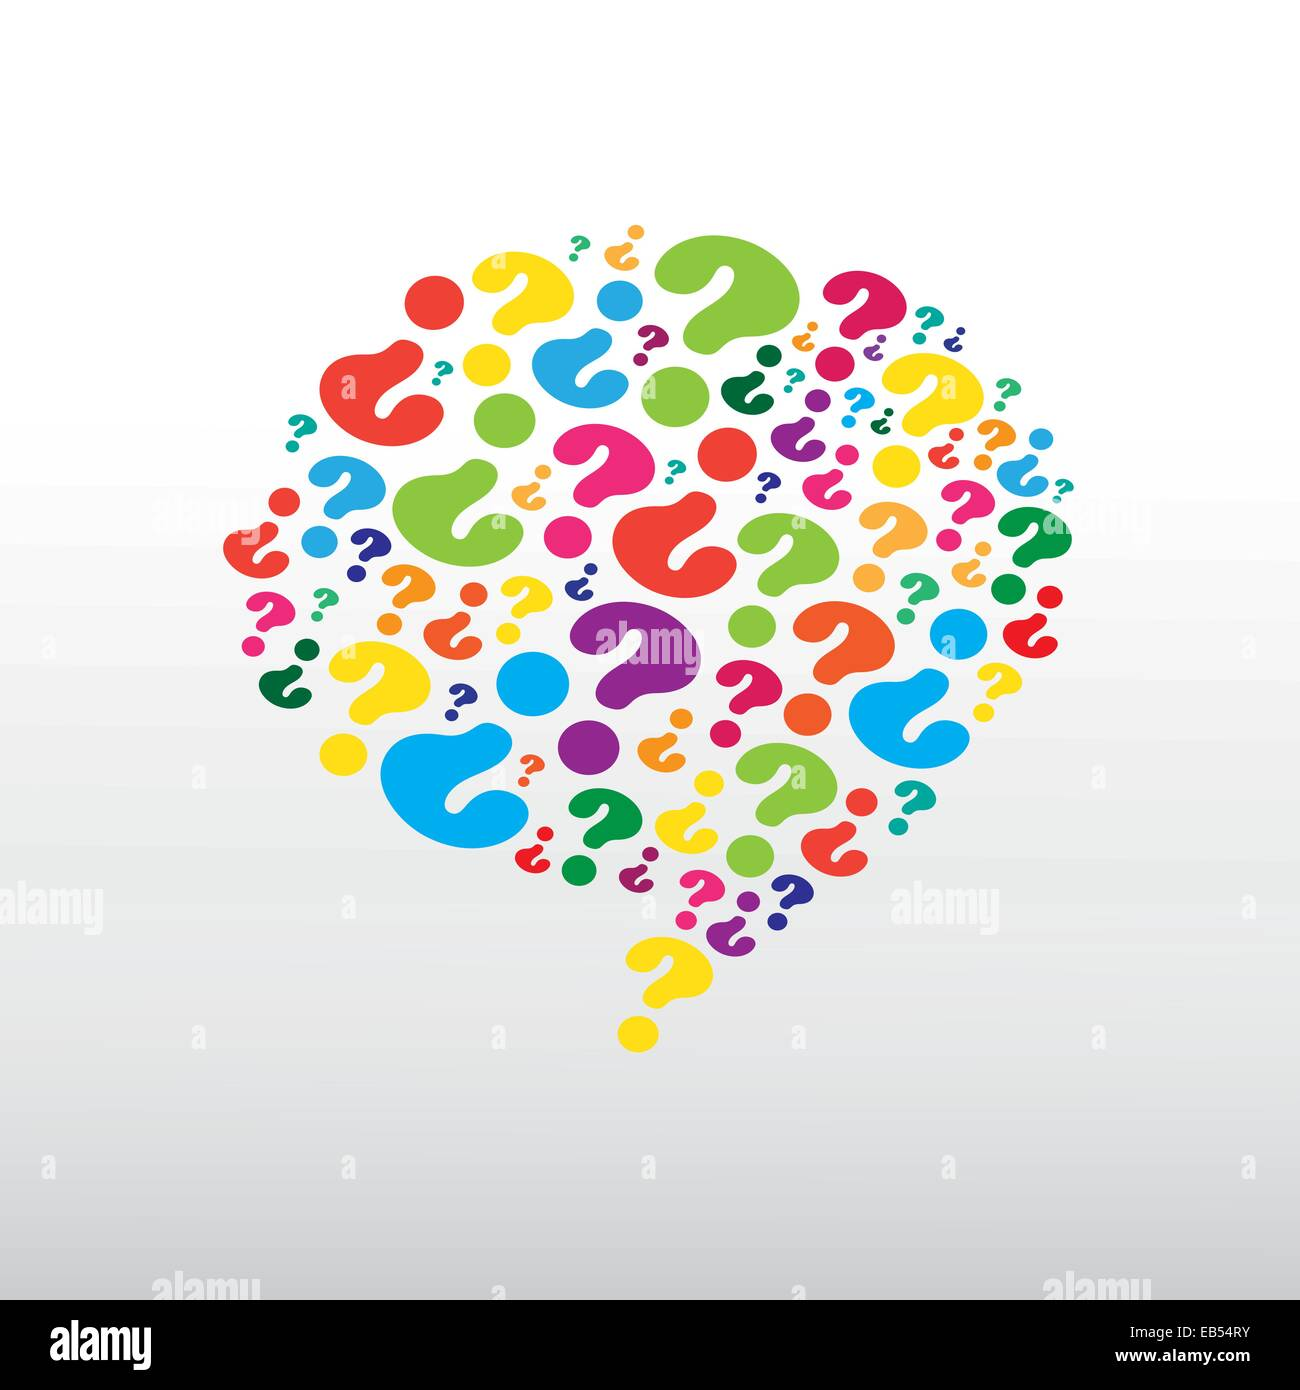 Question mark pattern in colourful cloud - Stock Image